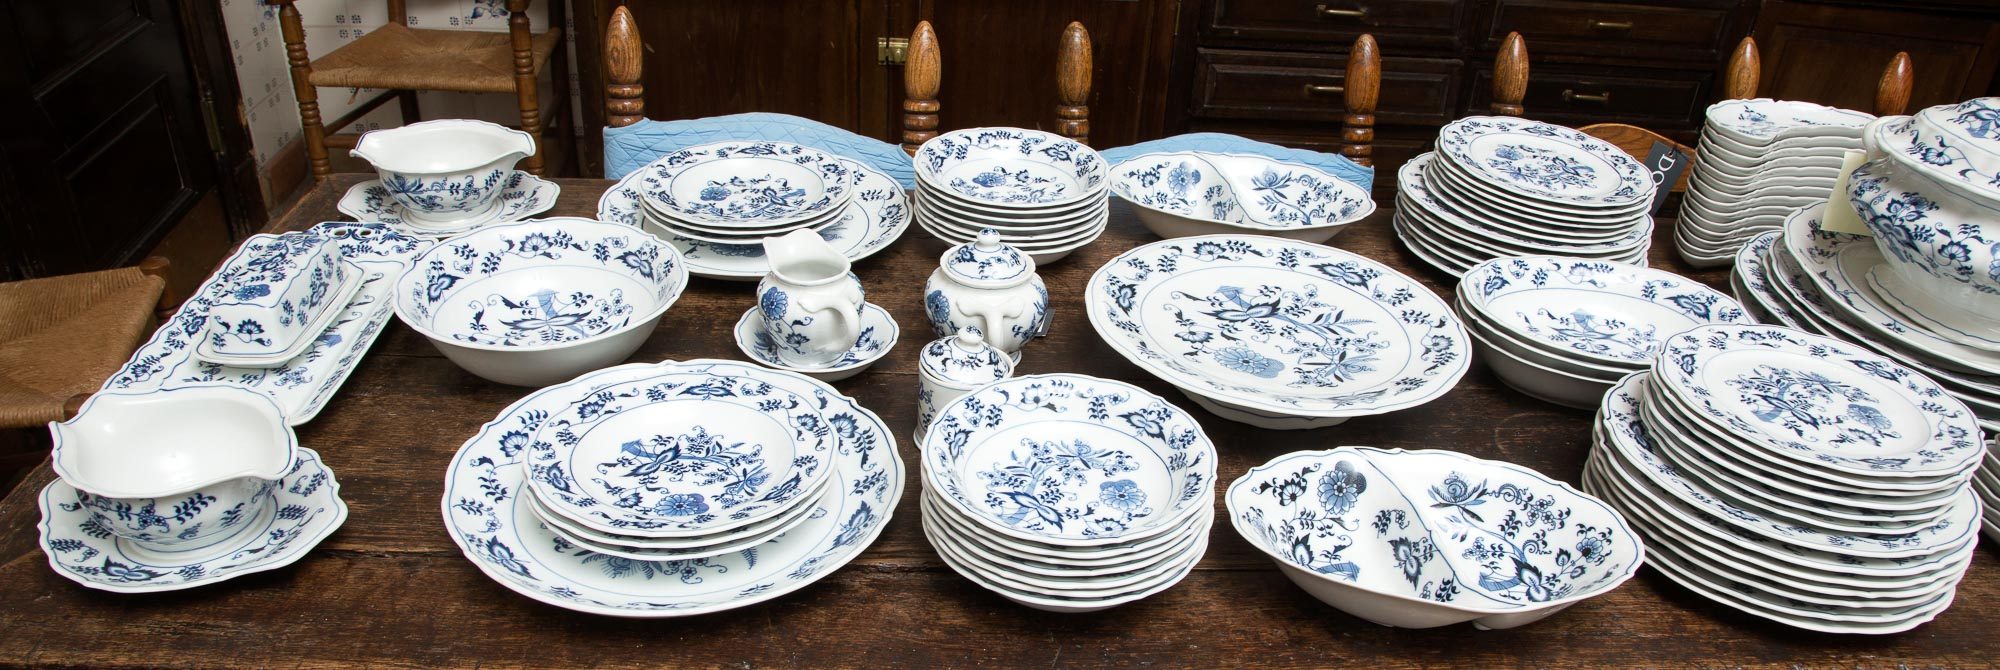 Lot image - Blue Danube Porcelain Dinner Service